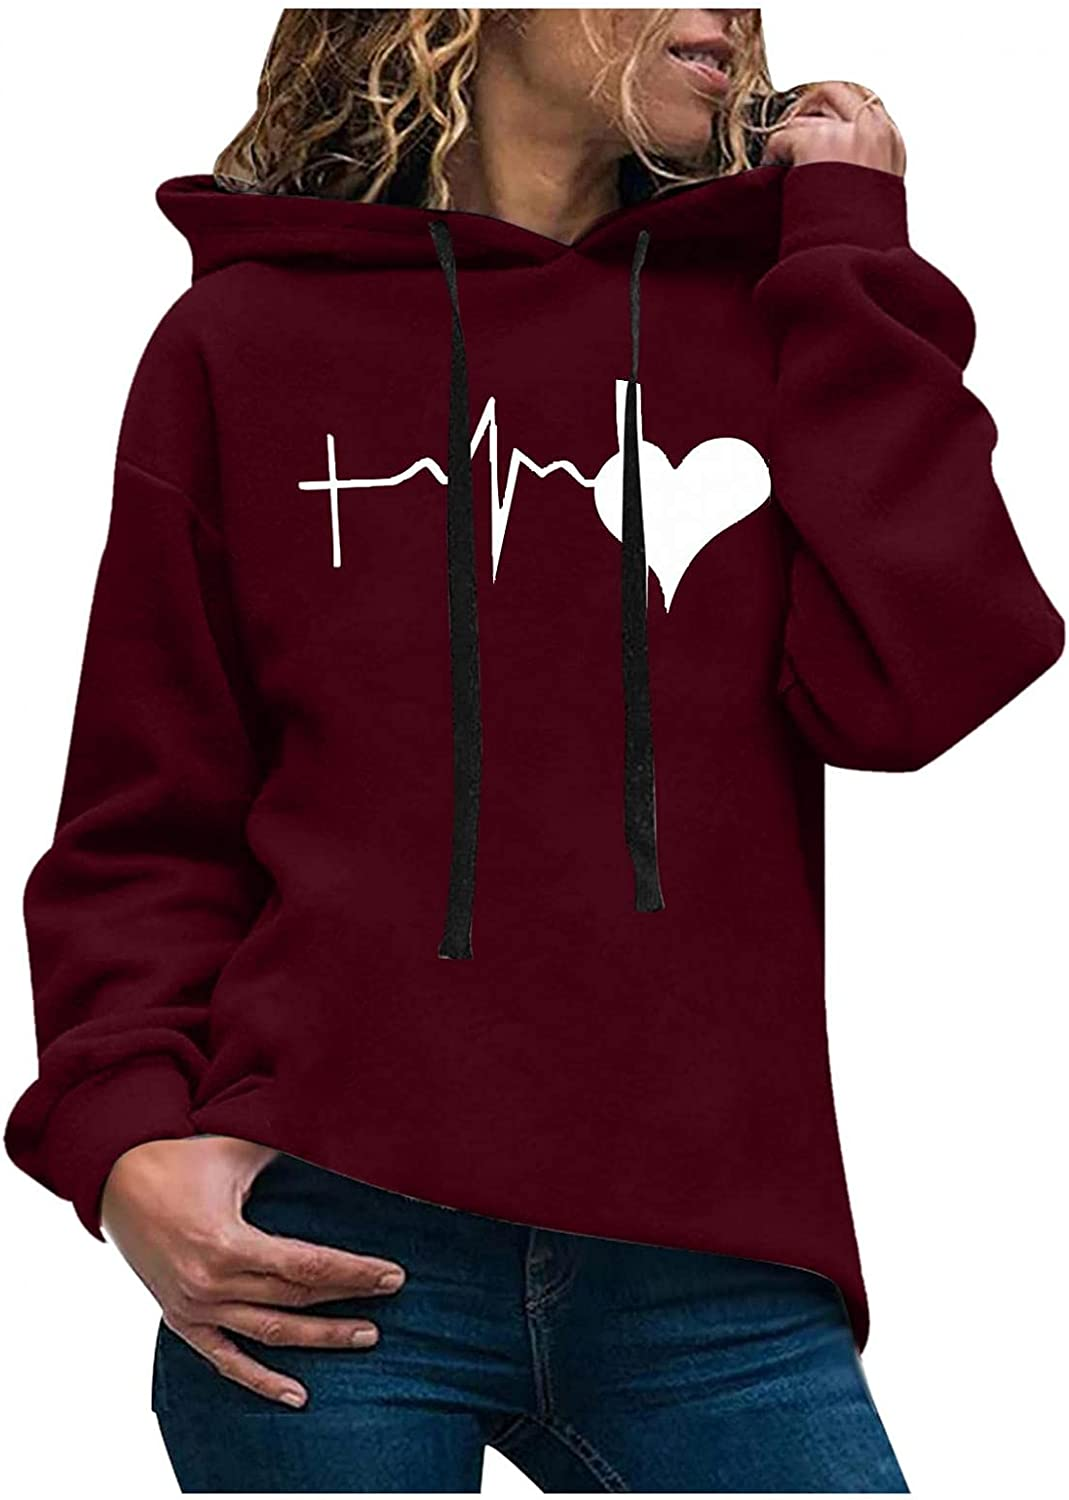 FABIURT Hoodies for Women, Womens Hoodies Graphic Heart Beats Printed Long Sleeve Shirts Pullover Plus Size Fall Tops